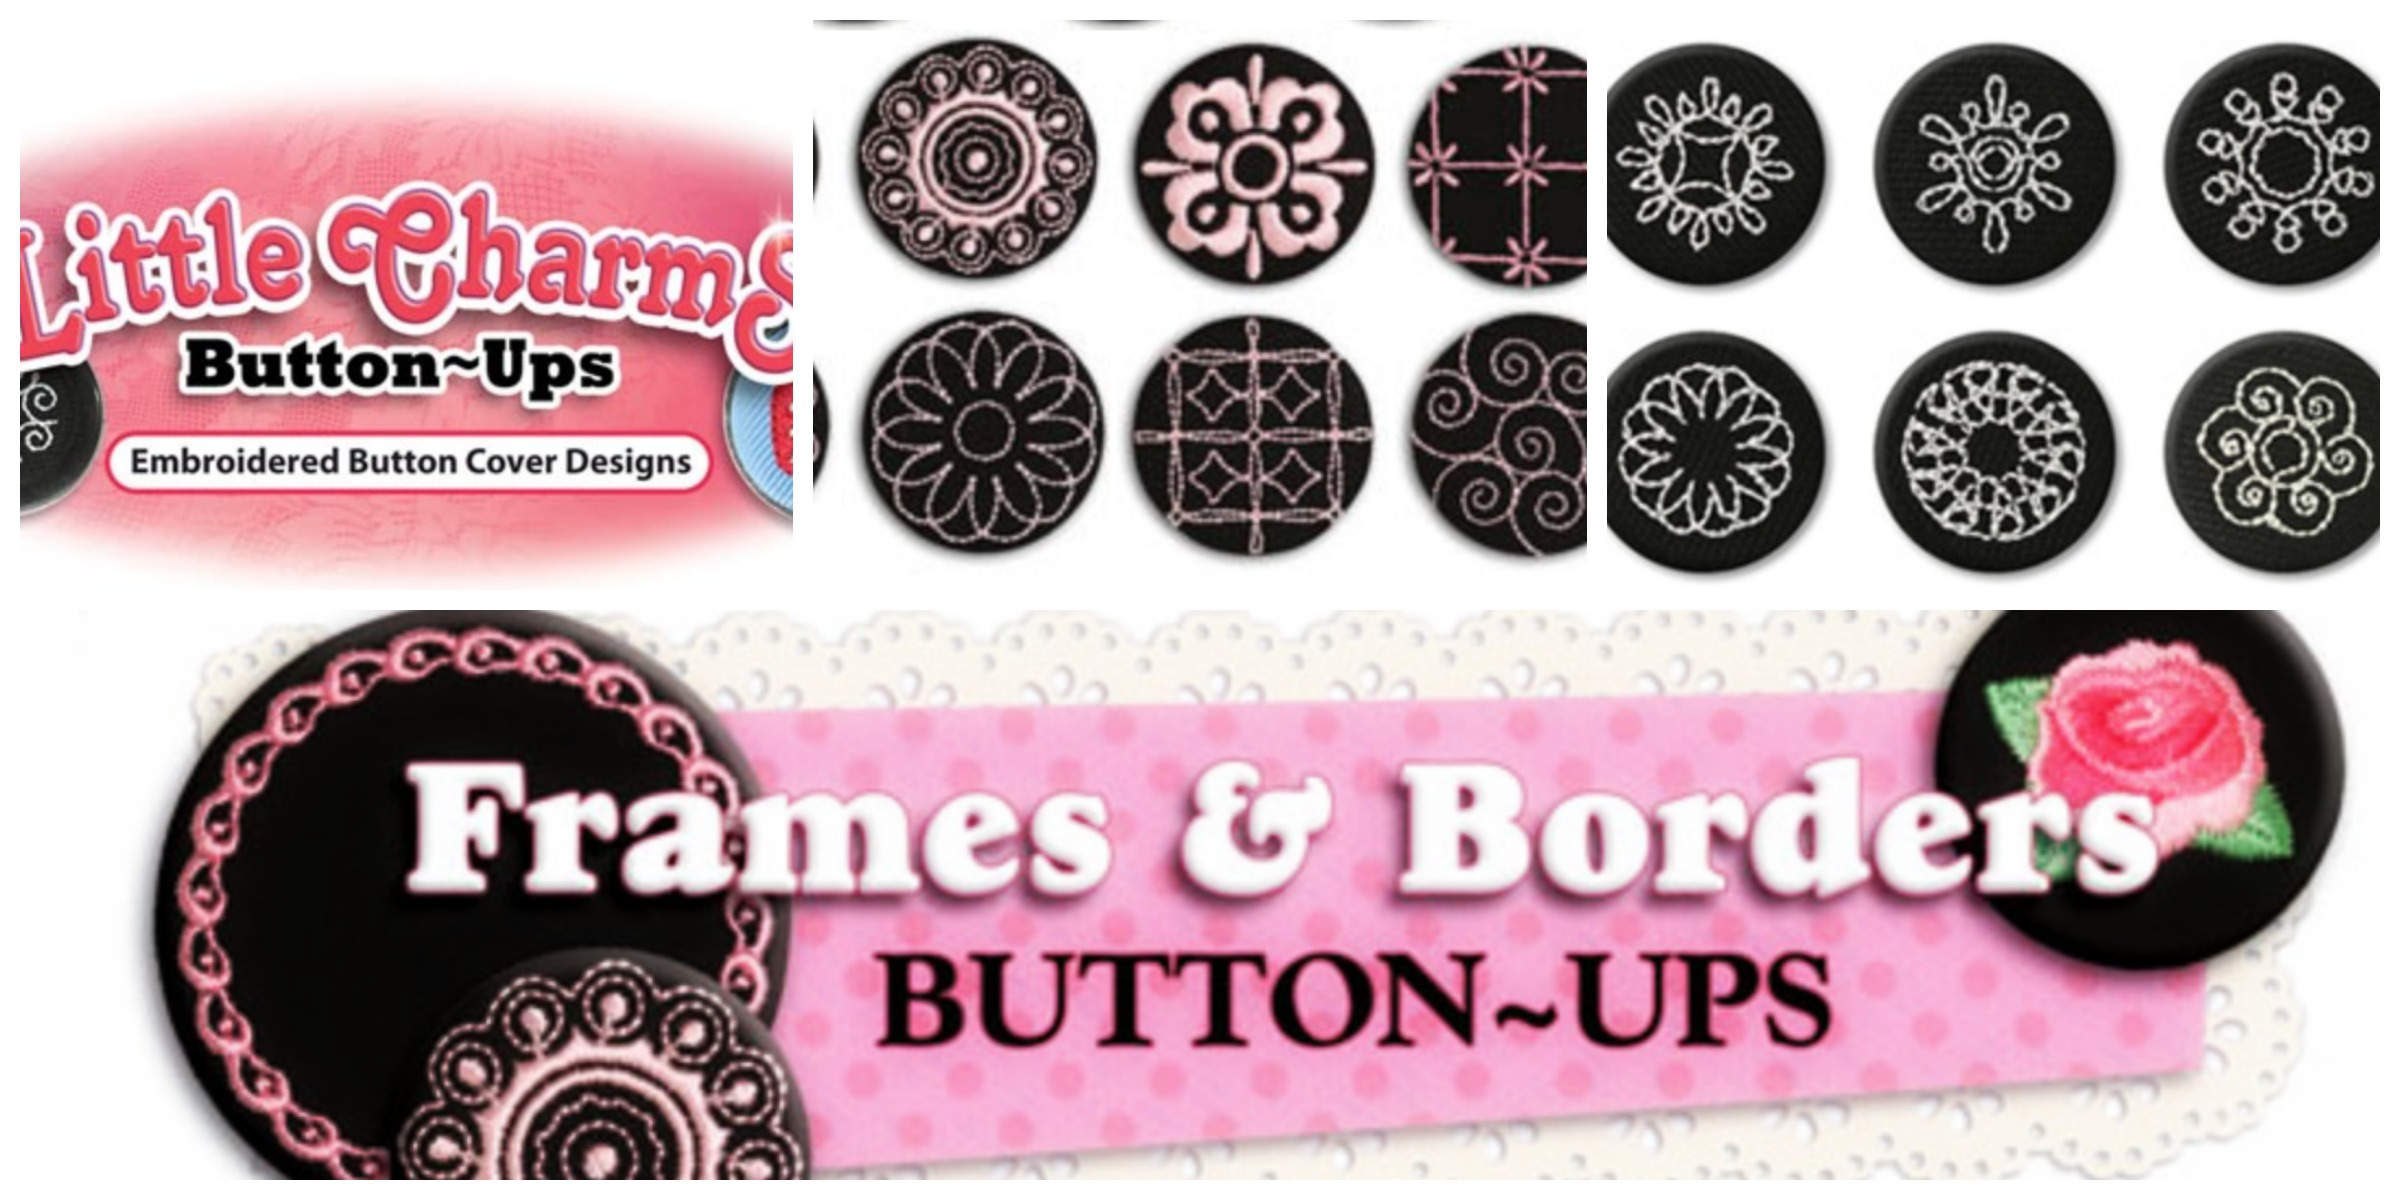 "Colorful Graphic Reading ""Frames & Borders Button-Ups"""